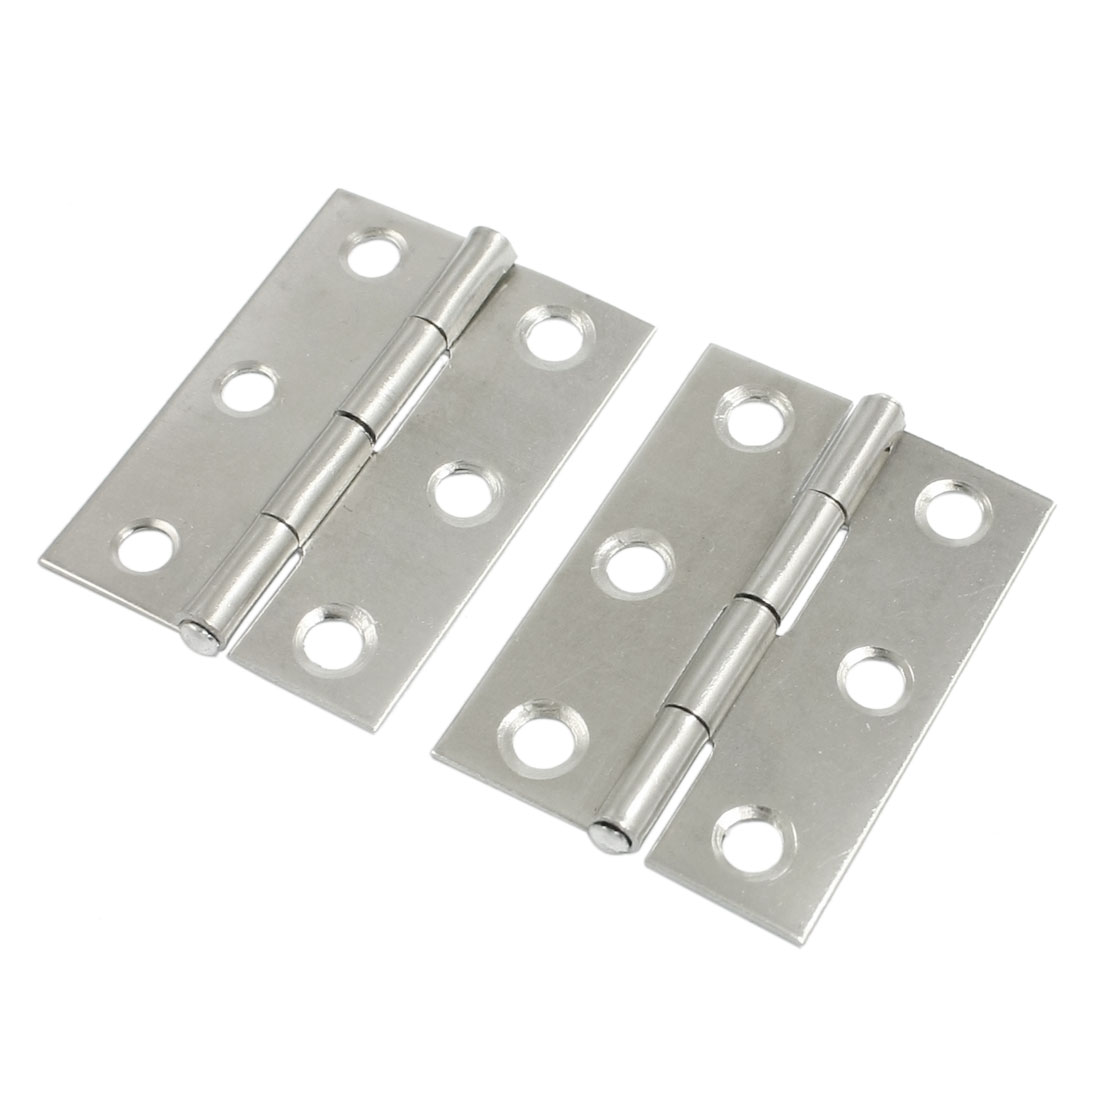 "Door Cabinet Polished Stainless Steel Butt Hinges 1.7"" Pair"